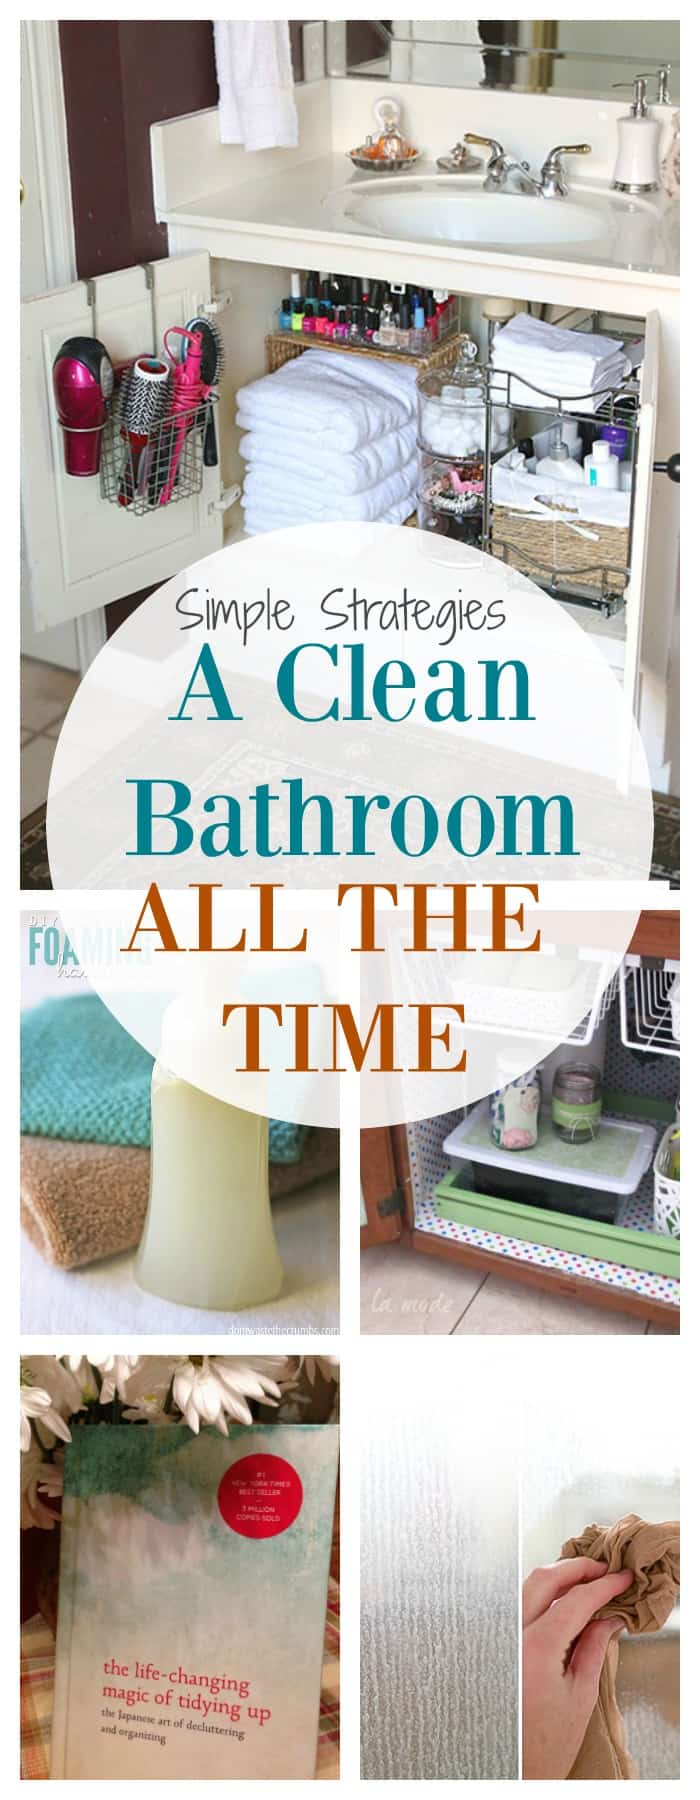 TOP tips to having a clean bathroom all the time